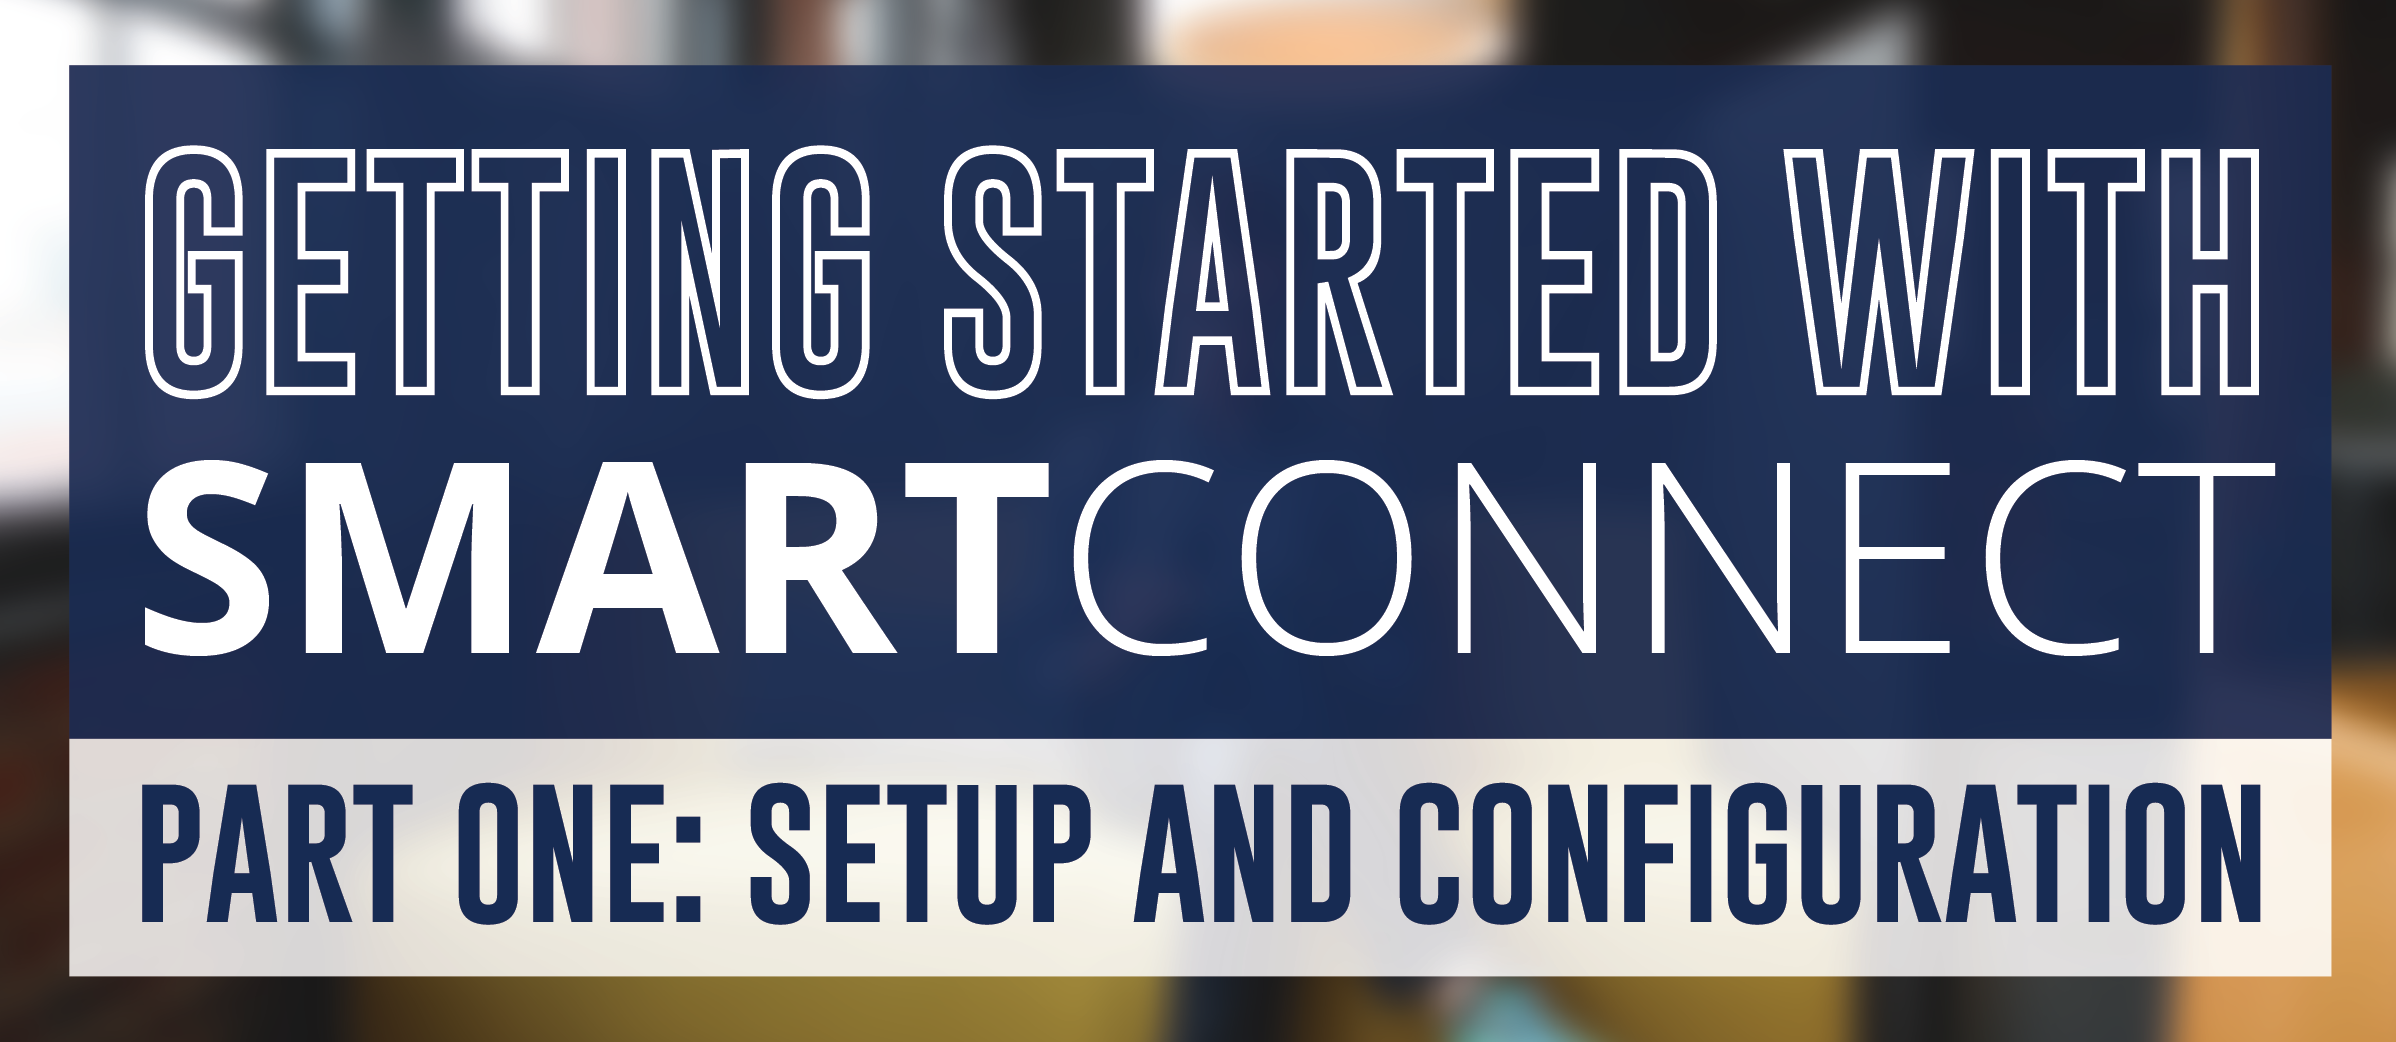 Getting Started with SmartConnect Part 1